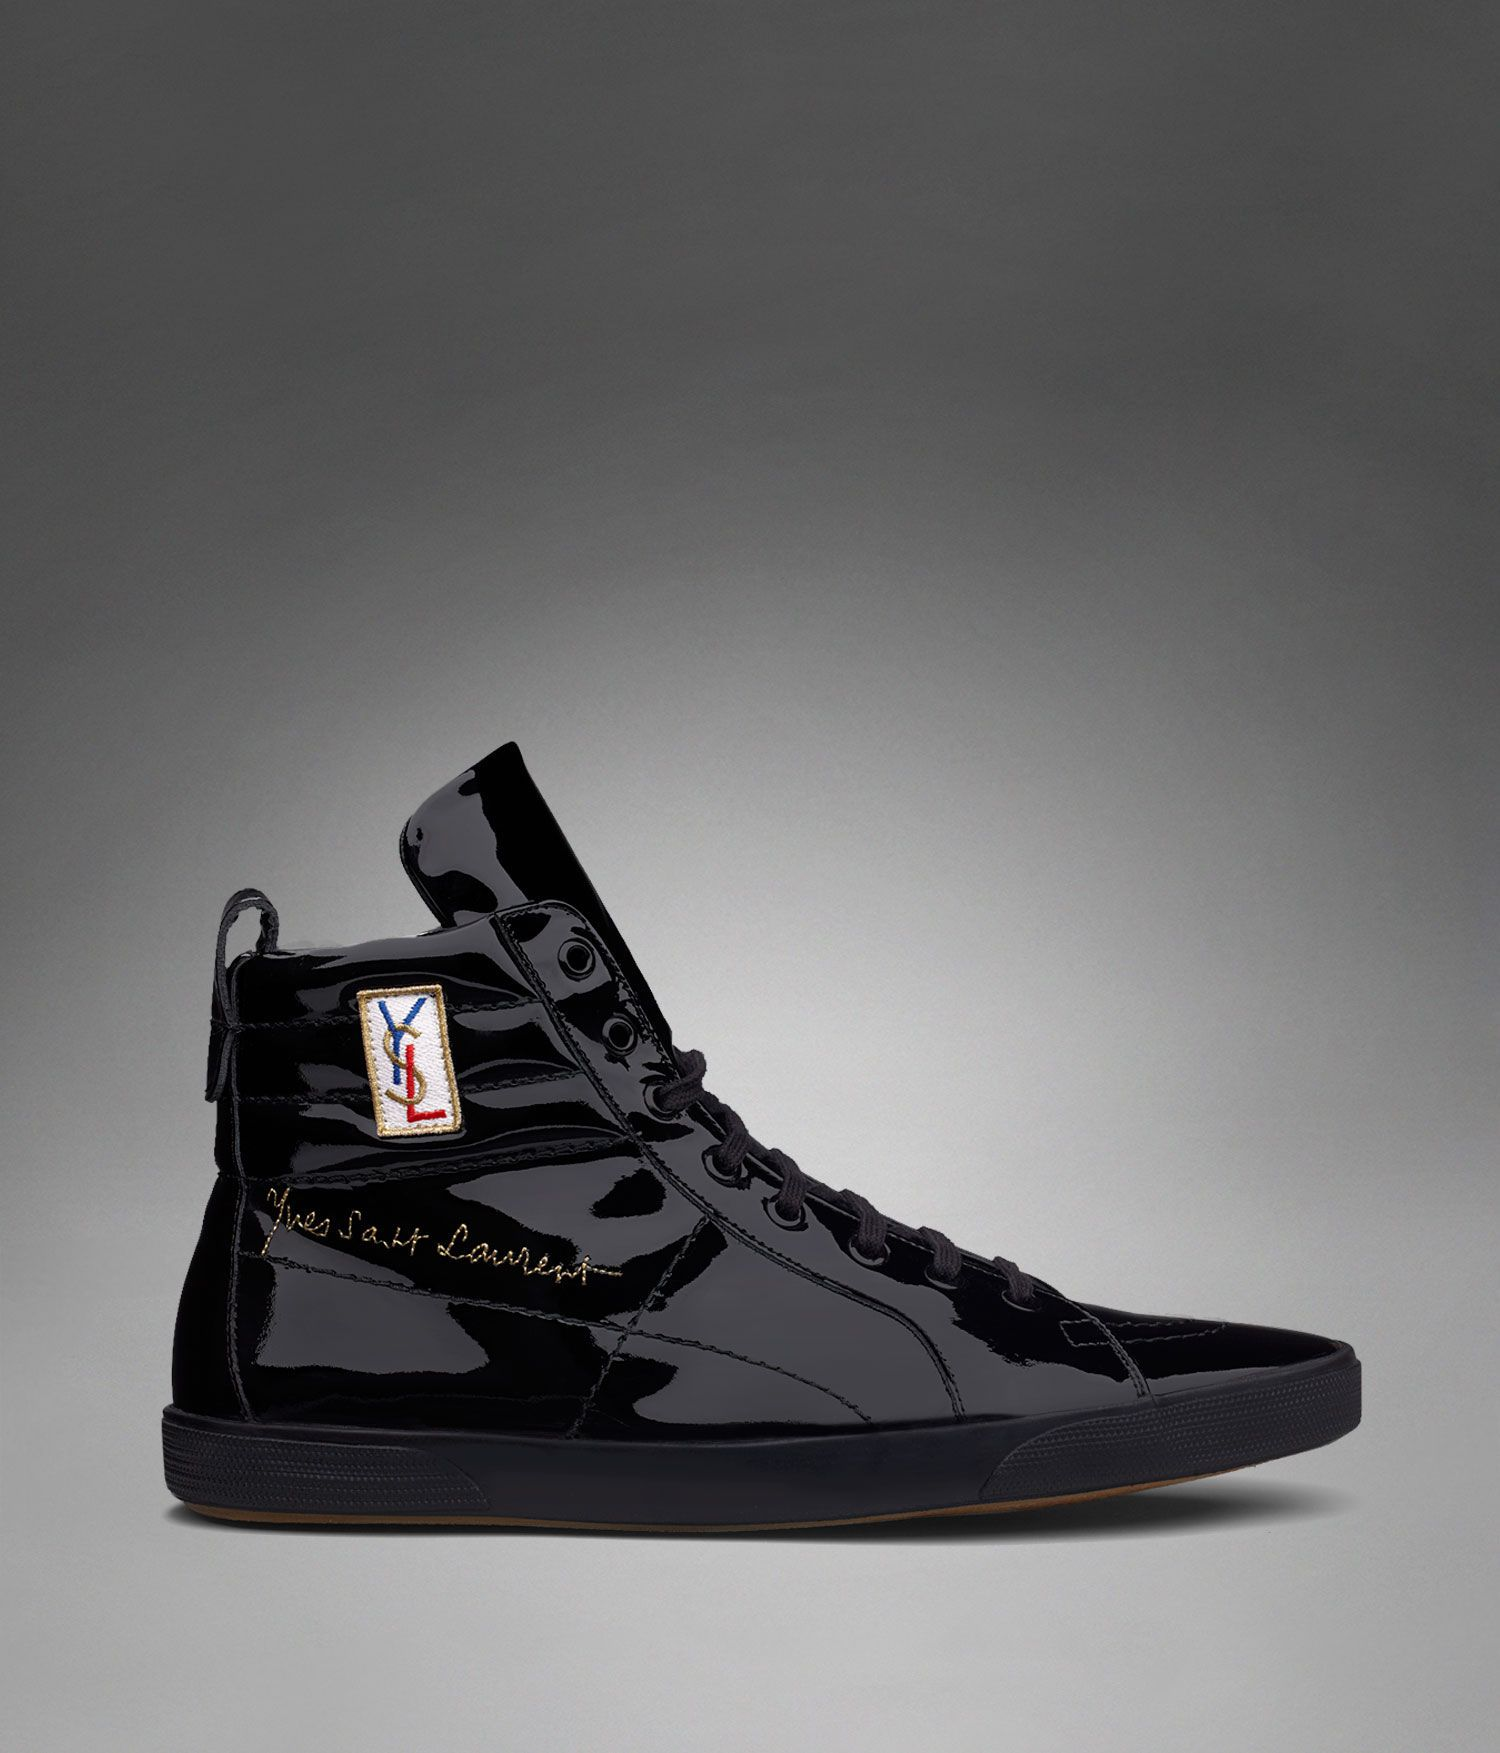 9ba1cf3a95cc Classic High-top Sneaker in Black Patent Leather - Yves Saint Laurent  my  favorite